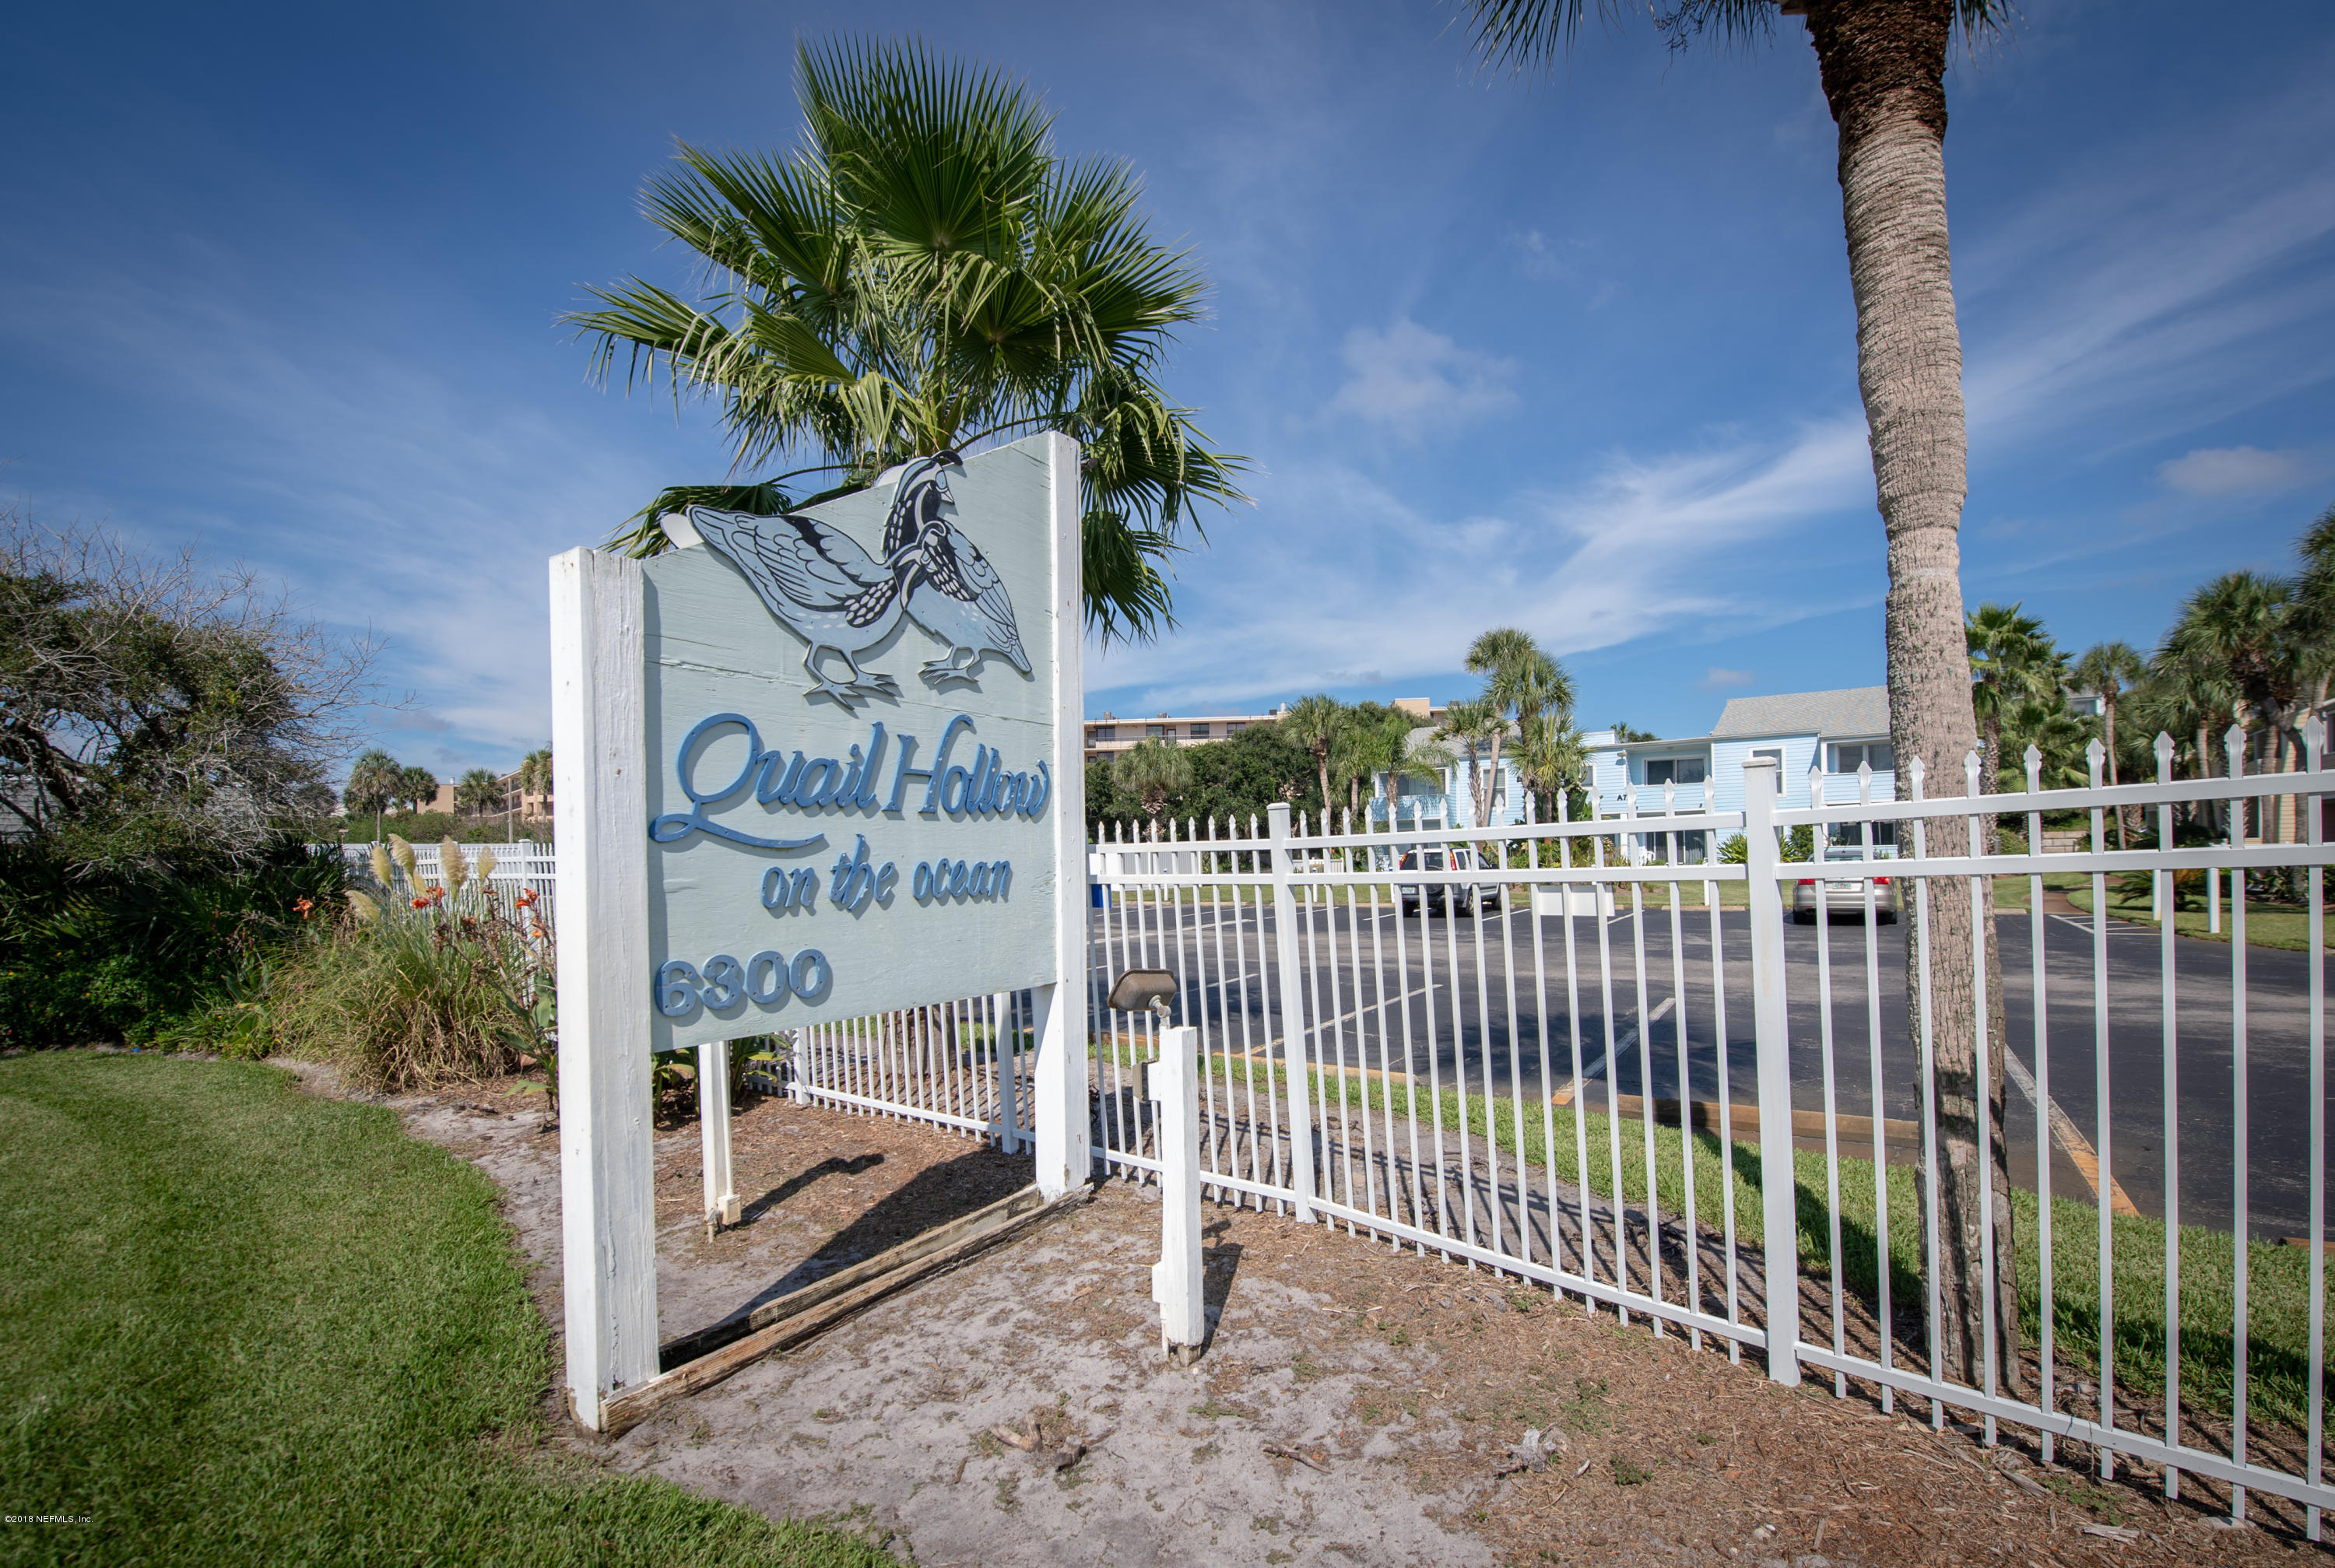 6300 A1A, ST AUGUSTINE, FLORIDA 32080, 1 Bedroom Bedrooms, ,1 BathroomBathrooms,Residential - condos/townhomes,For sale,A1A,957309